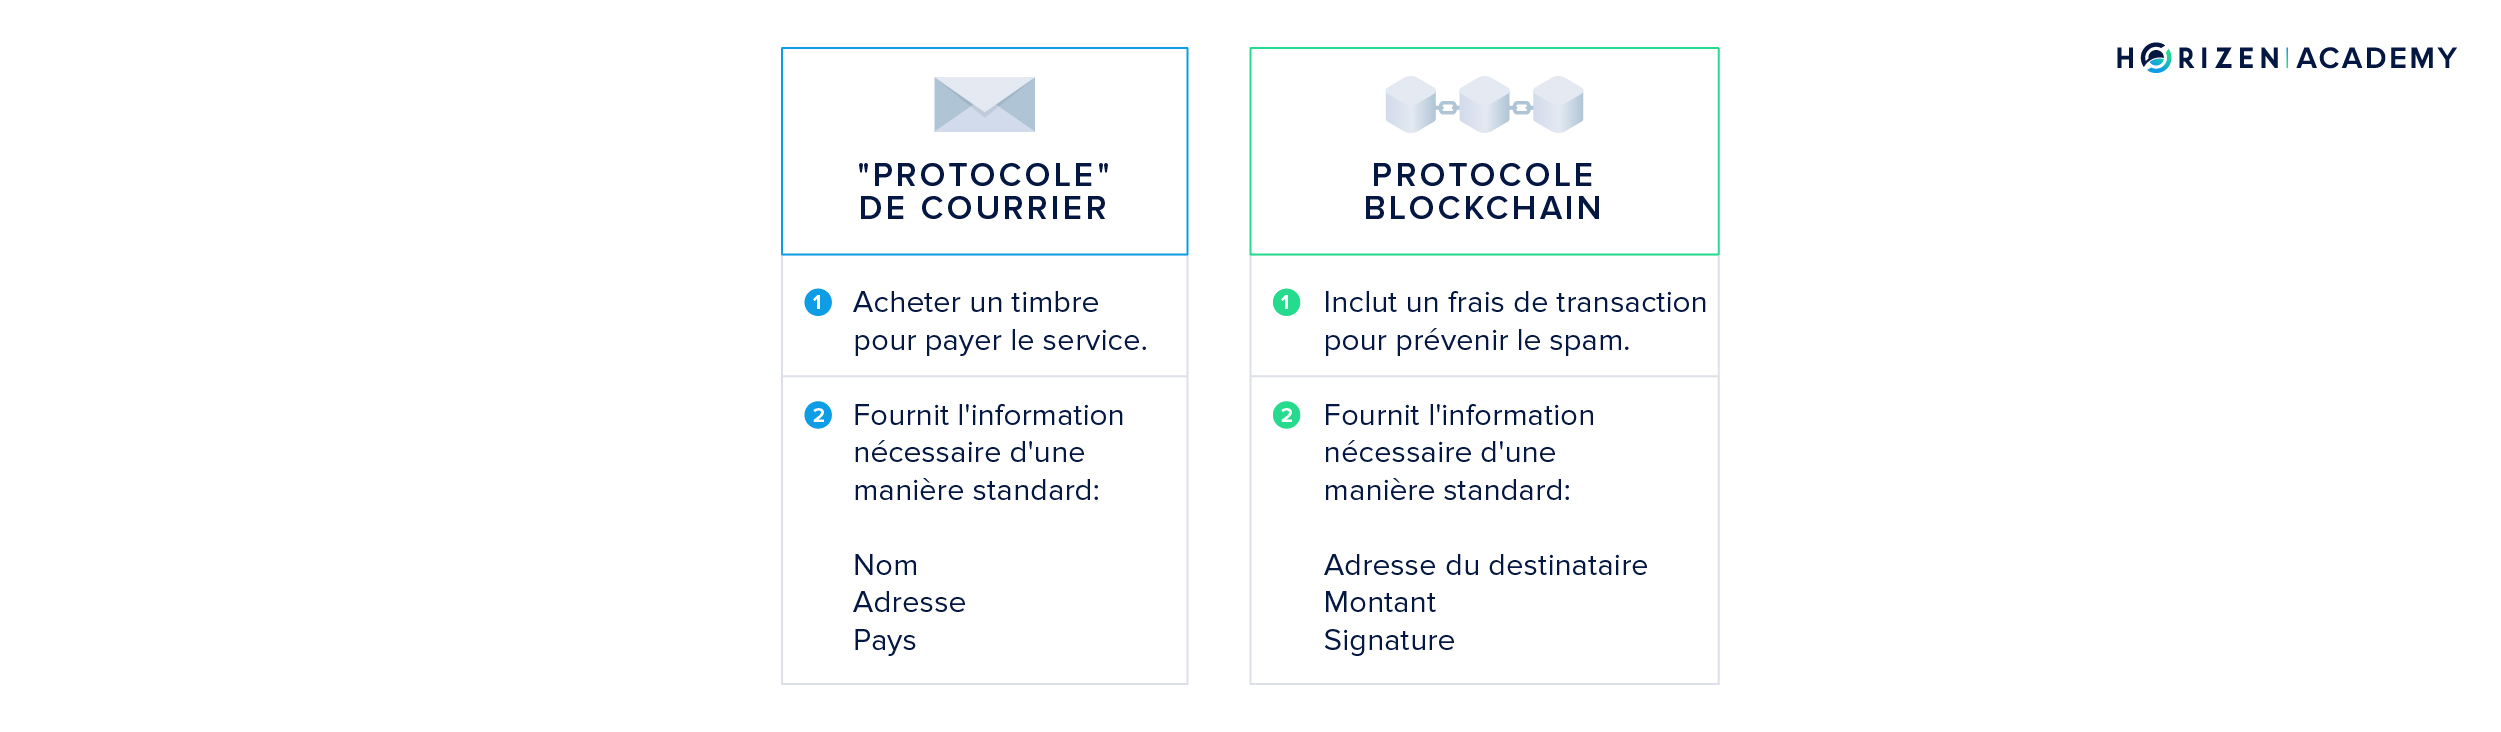 Mail protocol in FR